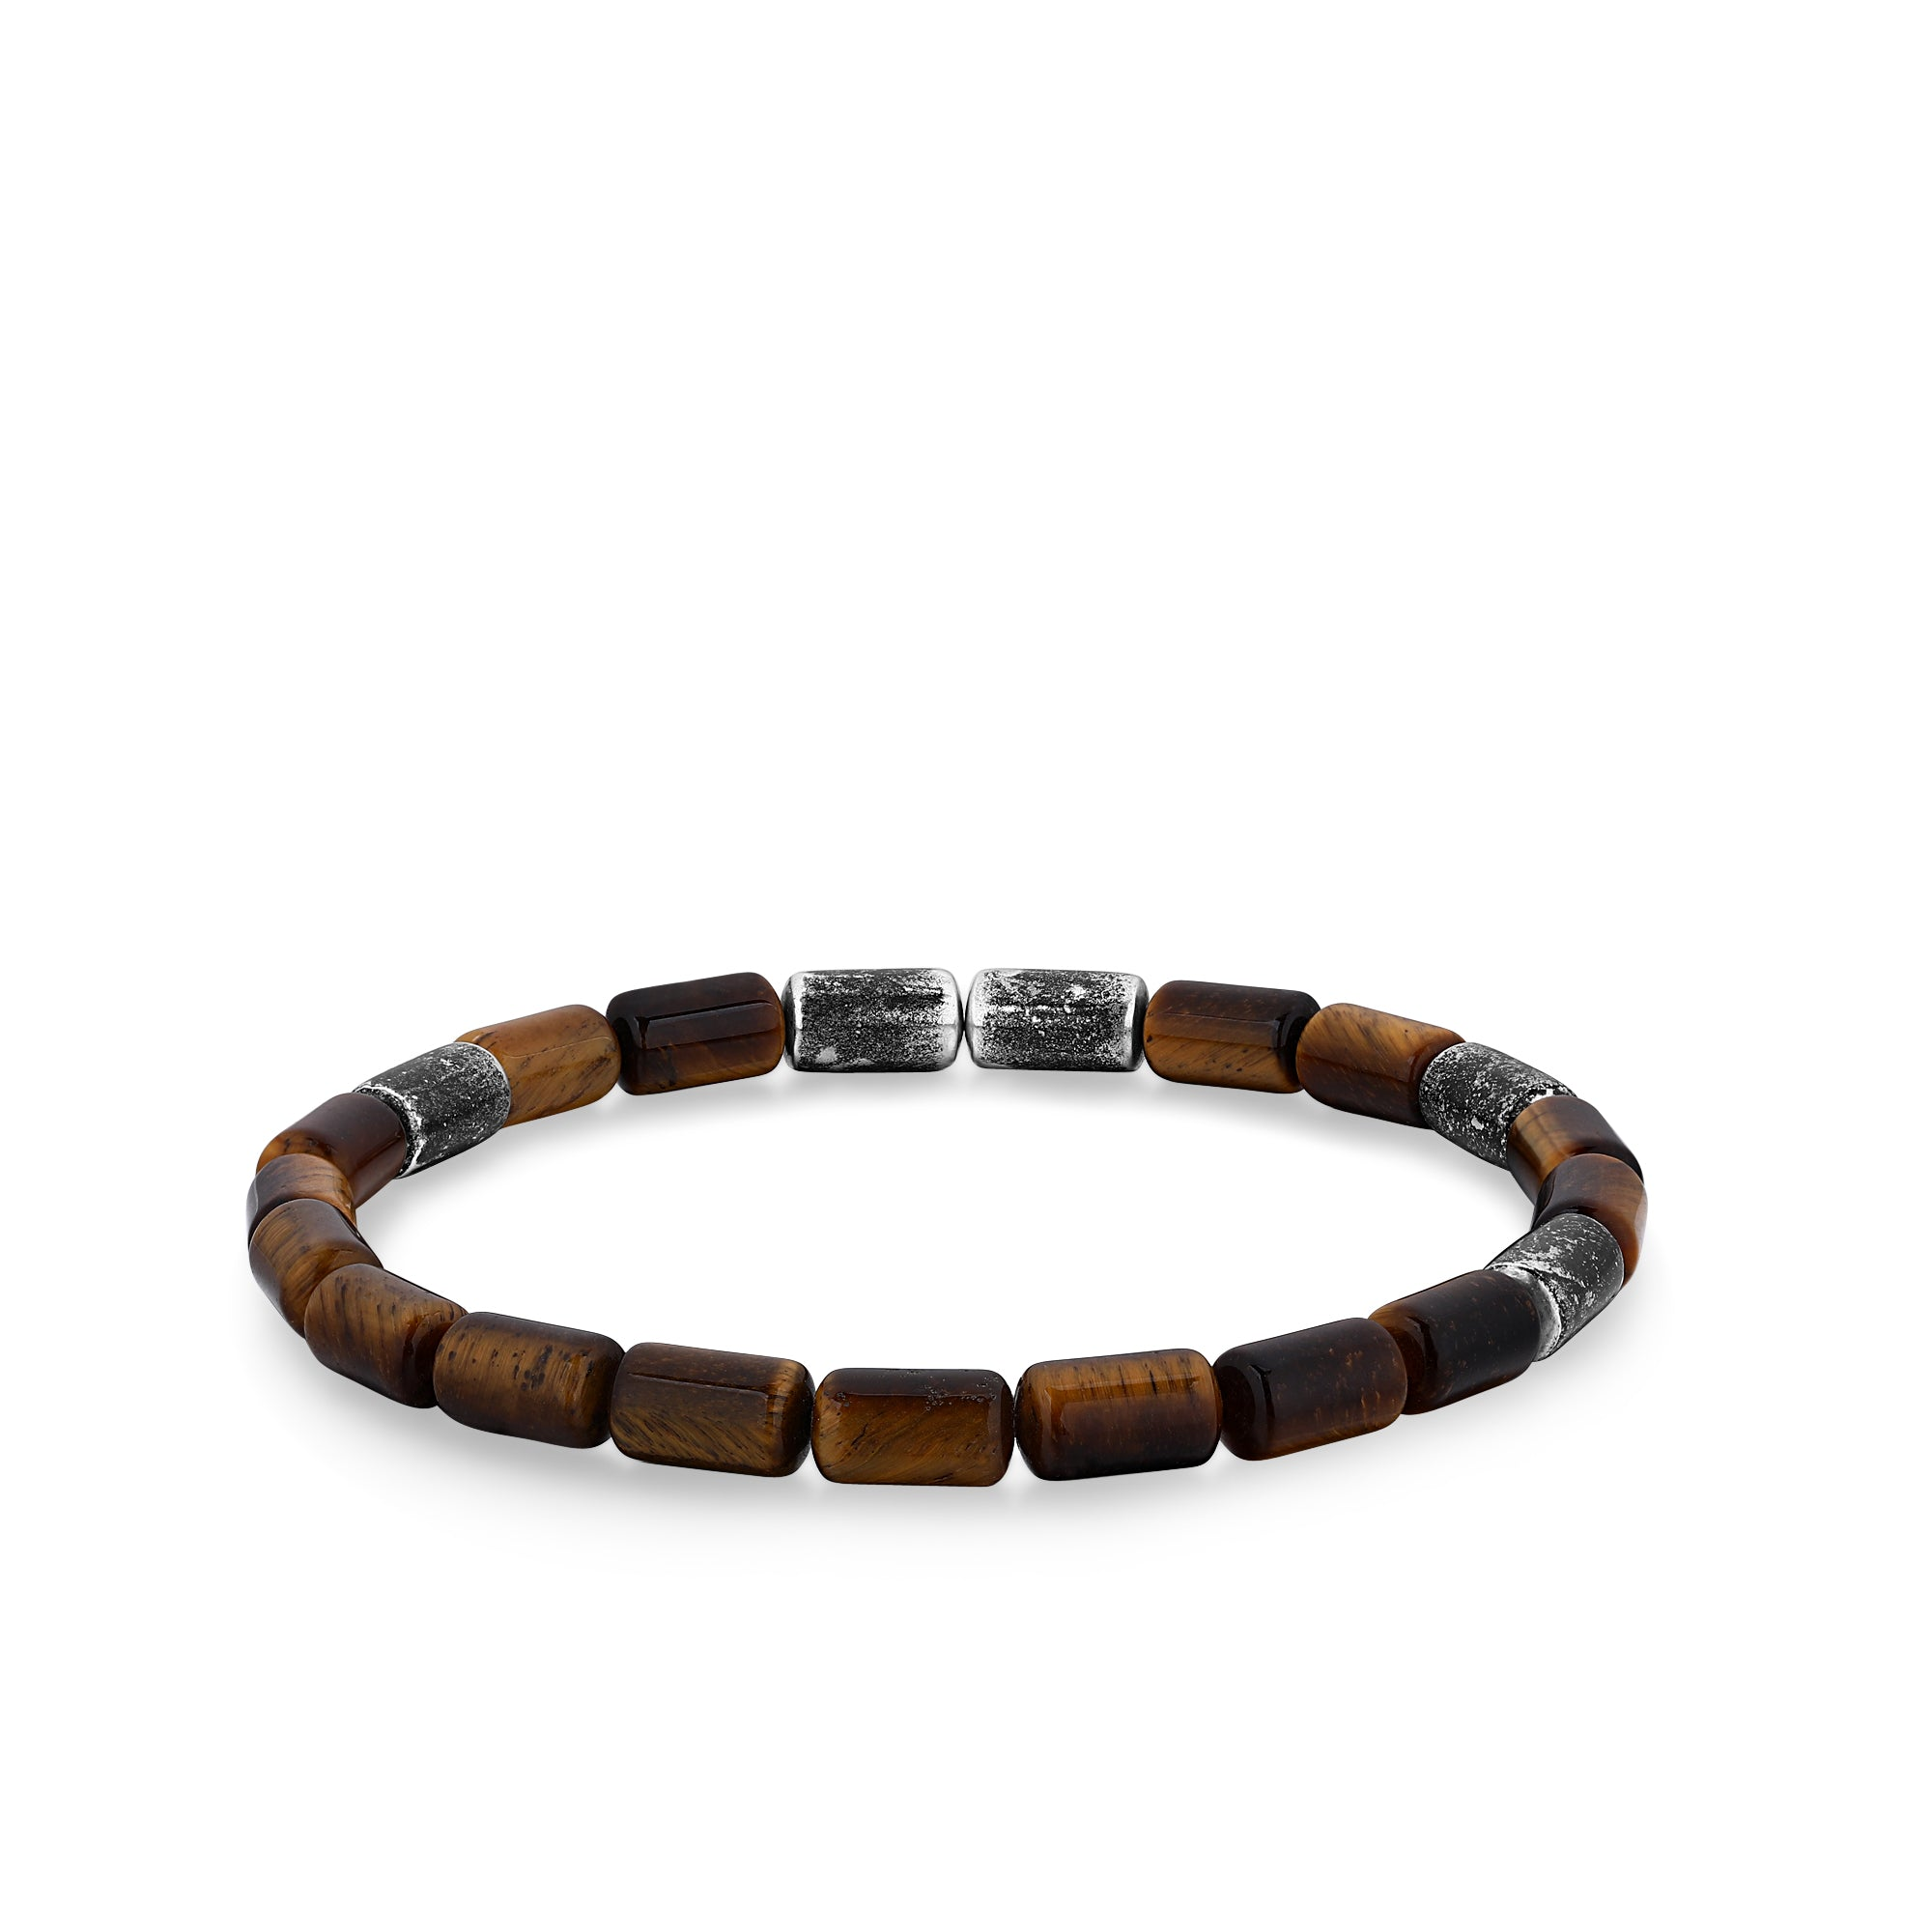 Silver Bracelet with Tiger Eye and Black Oxidized Beads